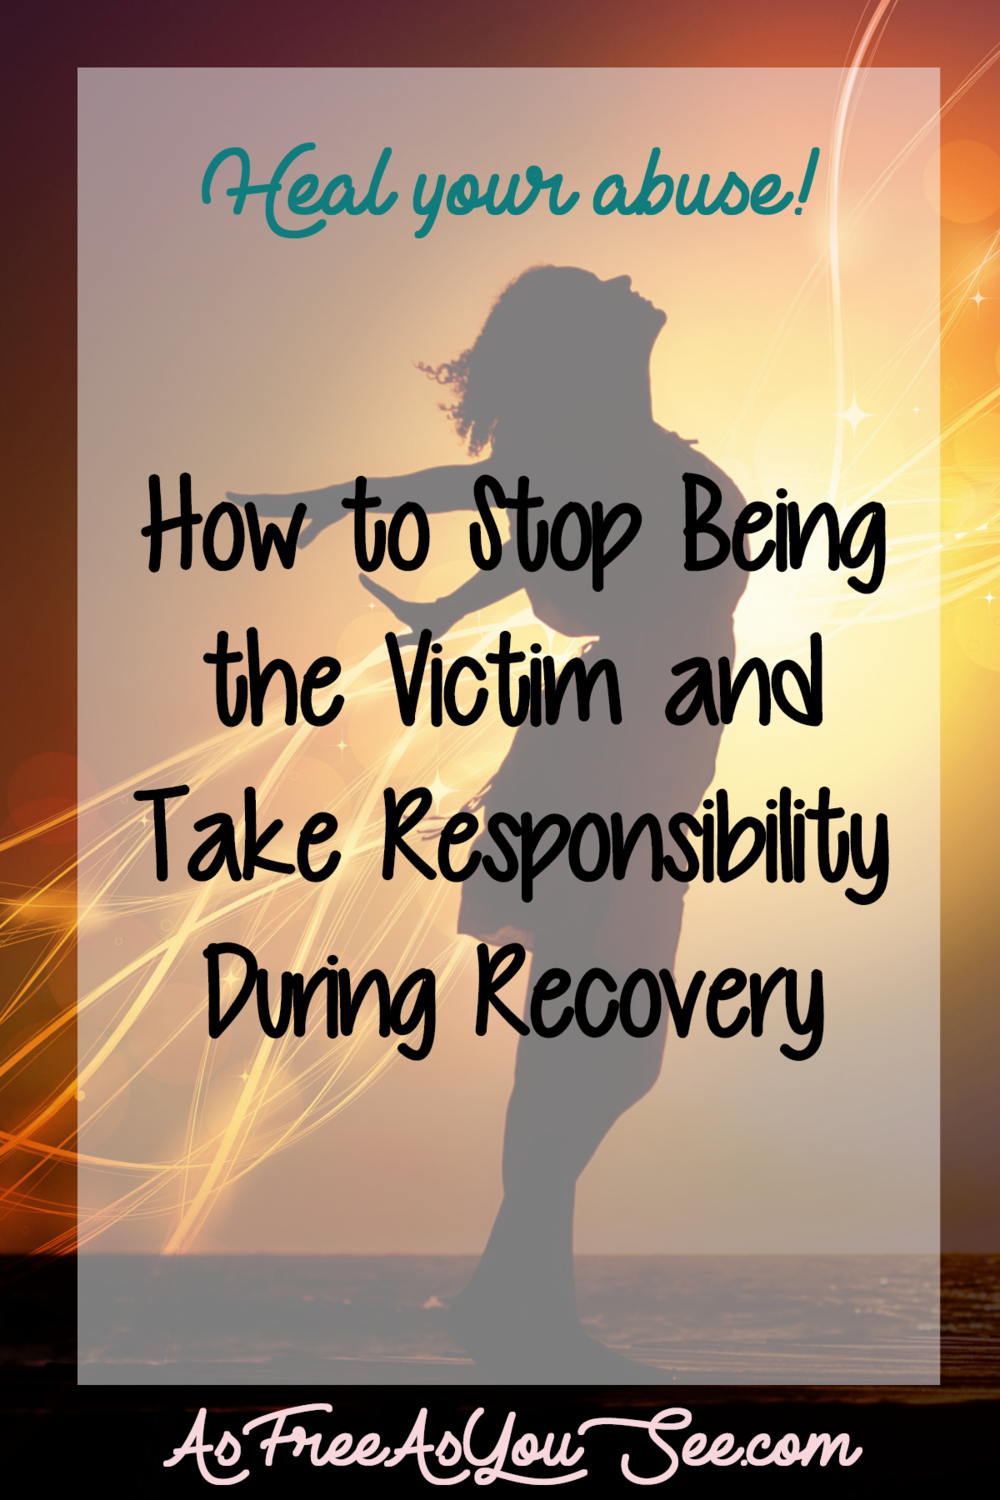 How to Stop Being the Victim and Take Responsibility During Recovery